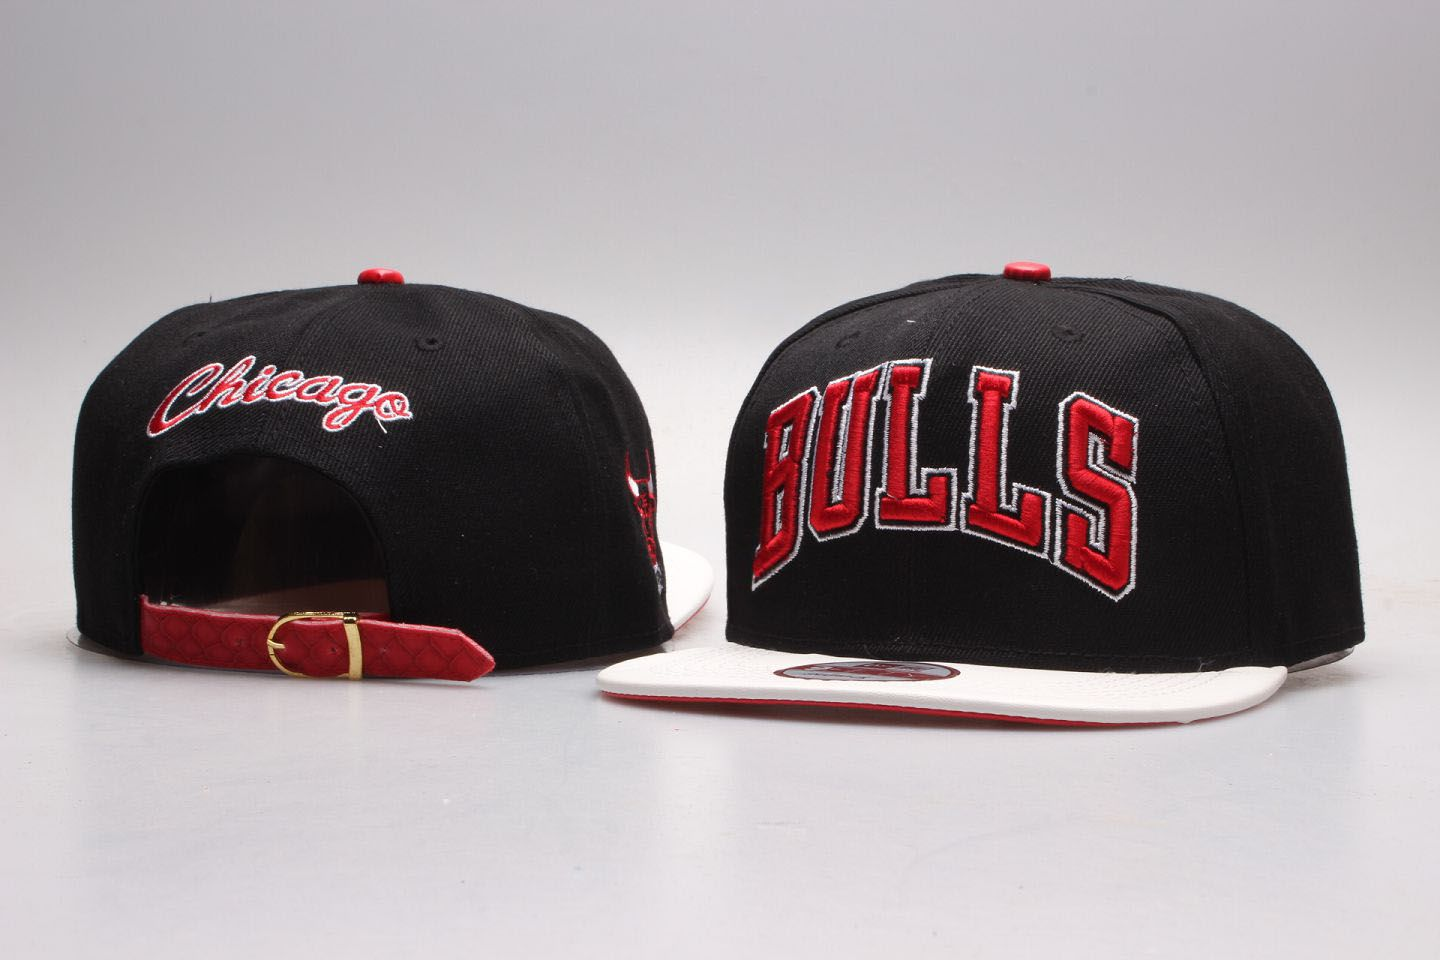 NBA Chicago Bulls Snapback hat 201811252